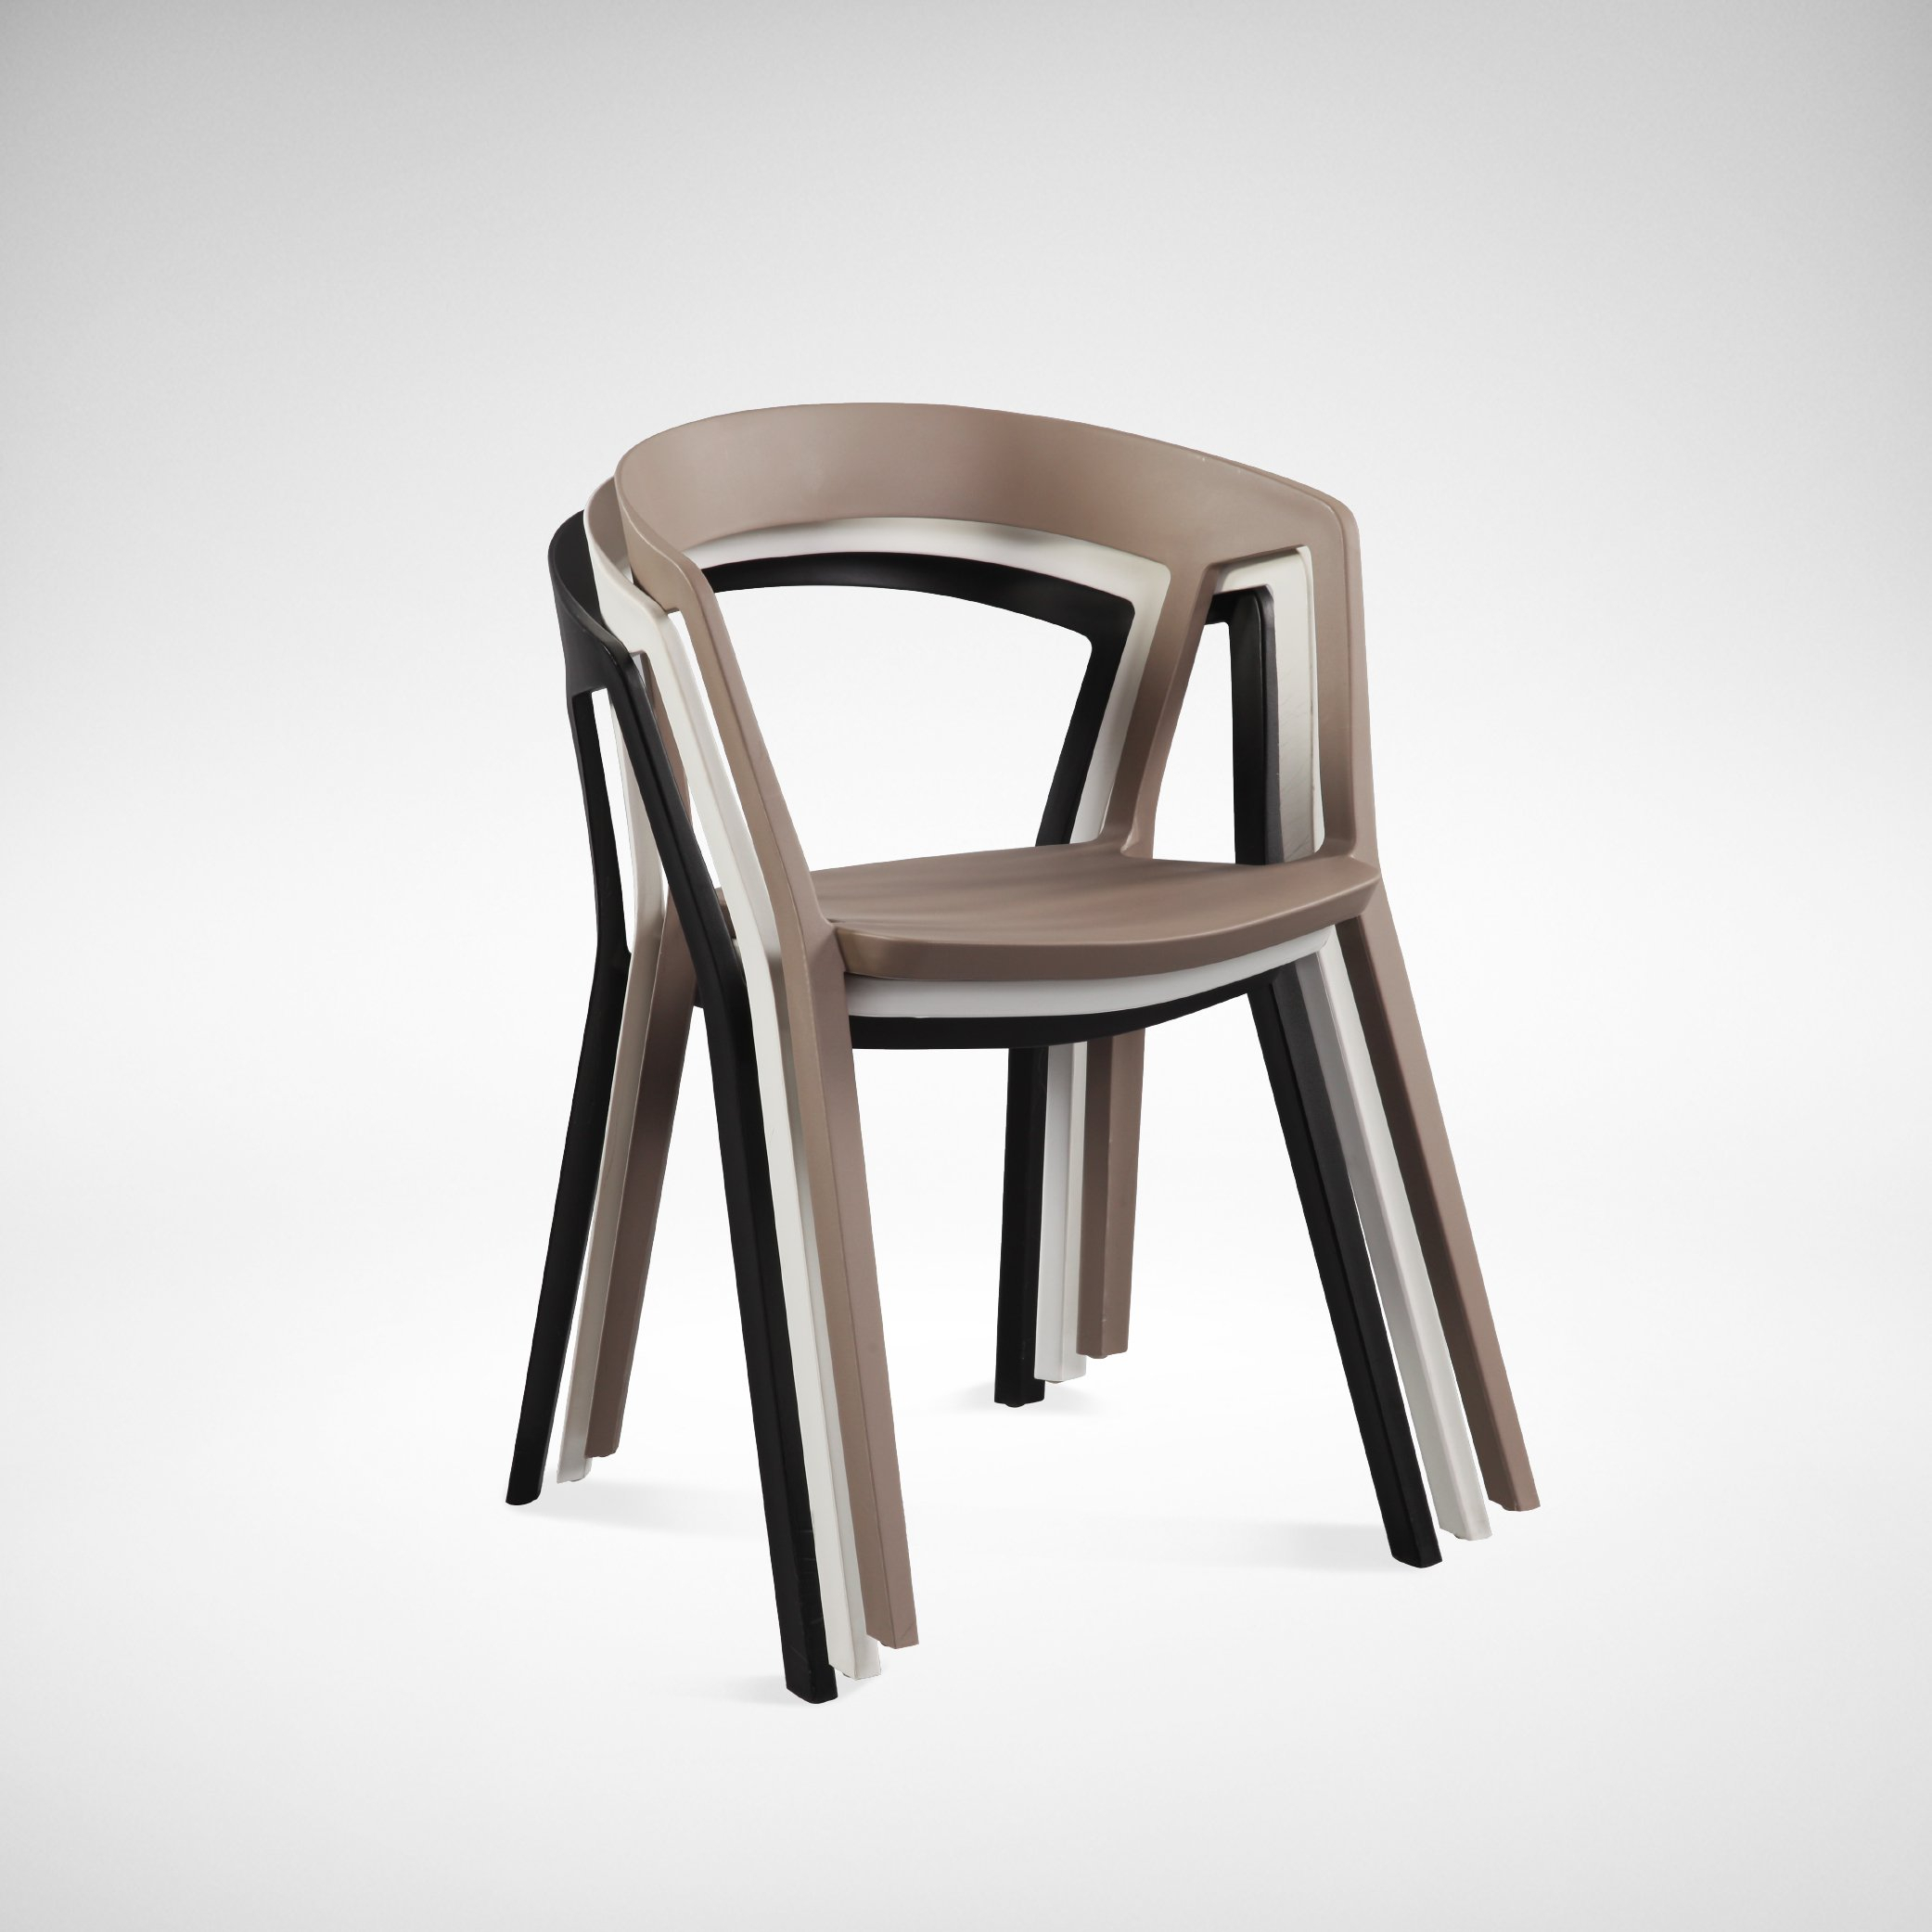 Mitchell Arm Chair | Comfort Design – The Chair & Table People With Regard To Mitchell Arm Sofa Chairs (Image 13 of 25)